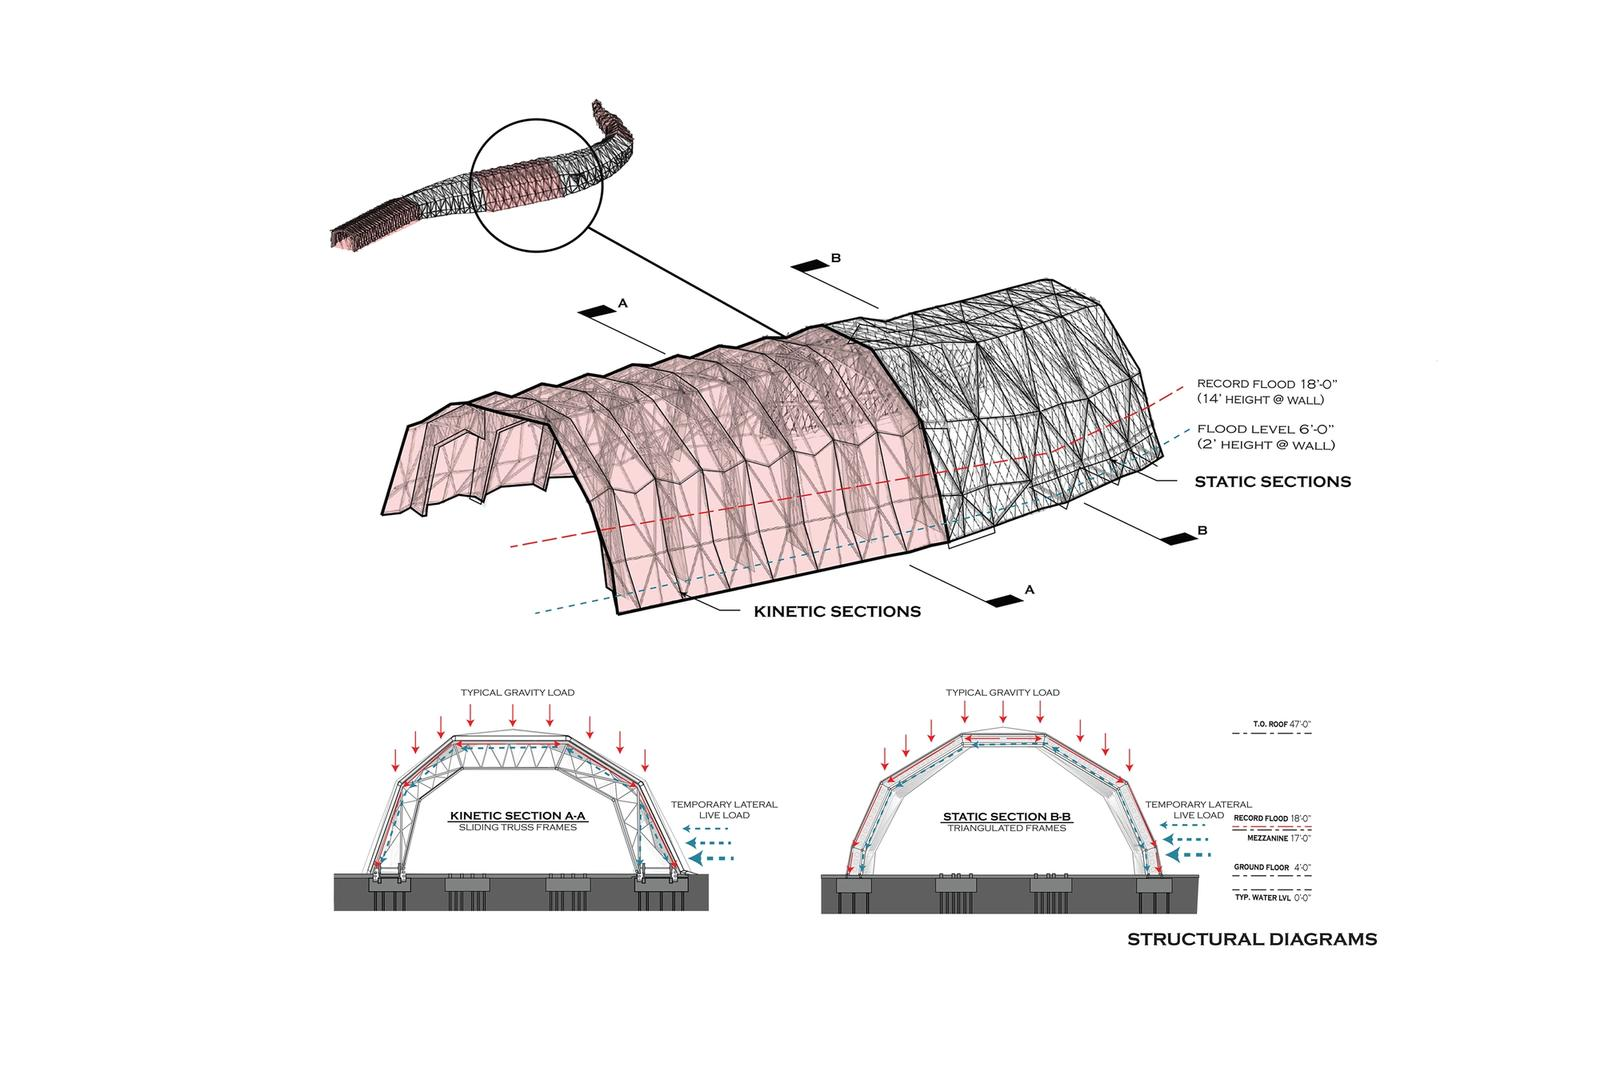 Structural Diagrams